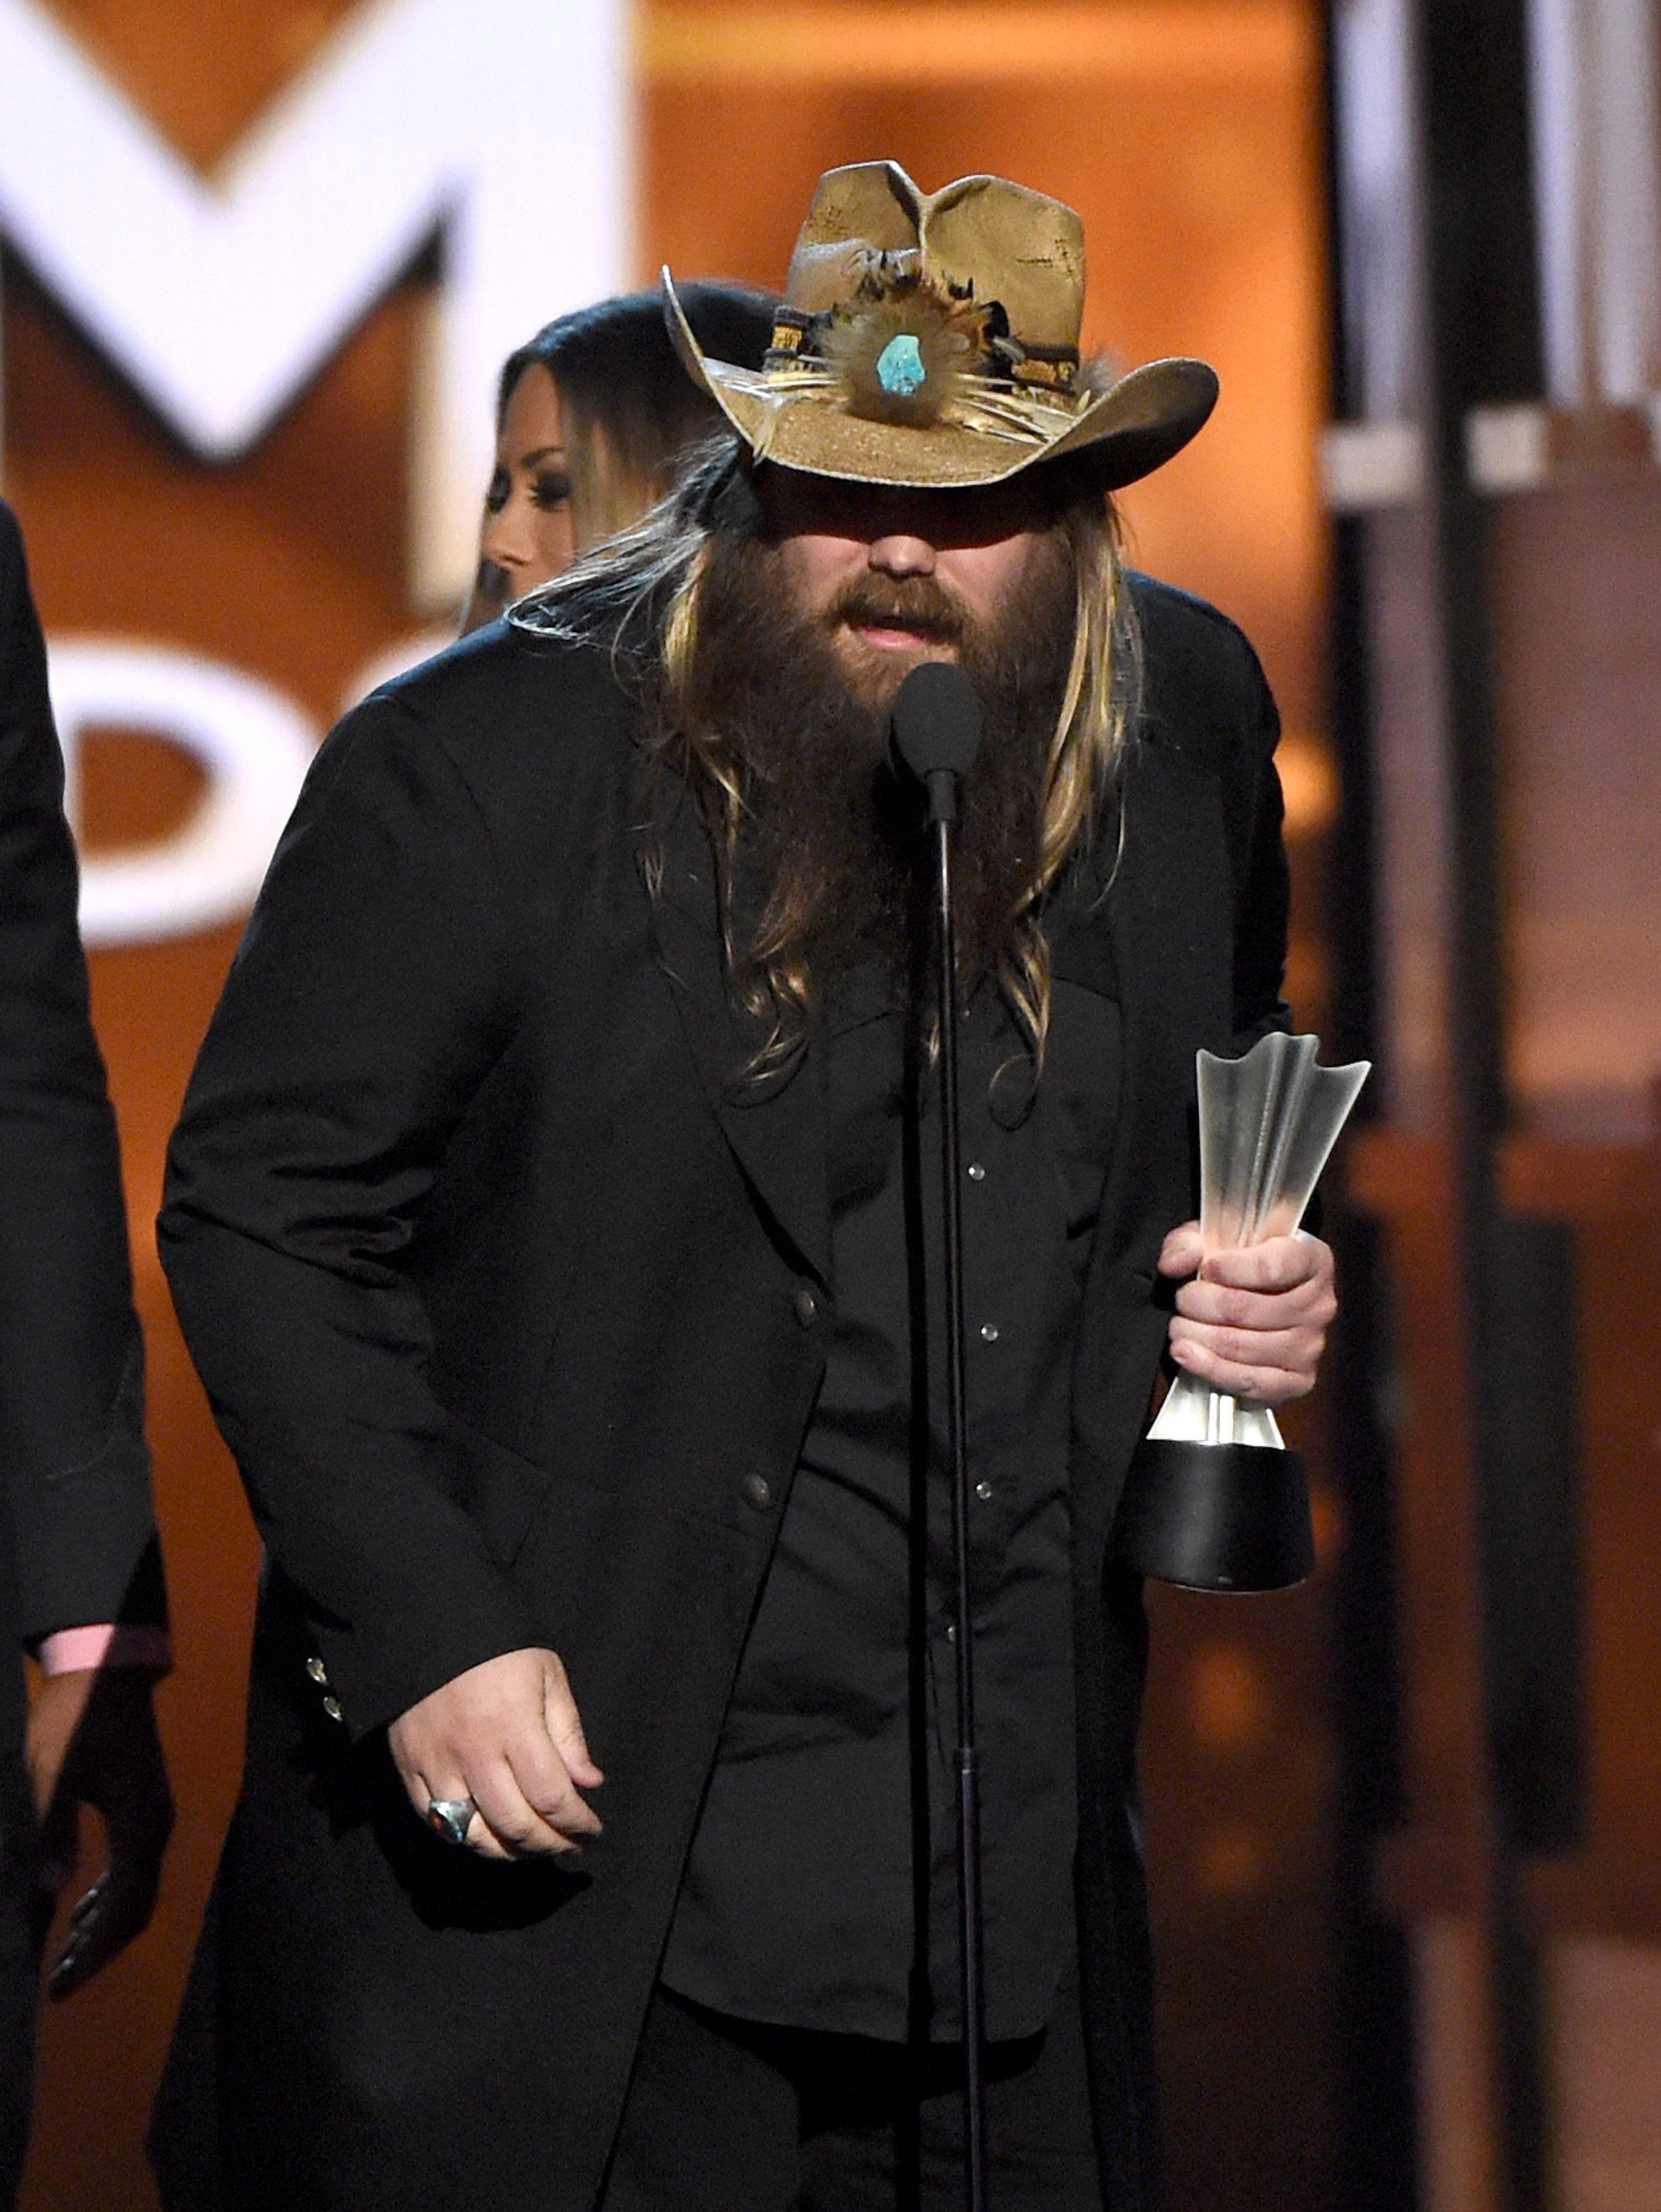 LAS VEGAS, NEVADA - APRIL 03:  Recording artist Chris Stapleton accepts the Song of the Year award for 'Nobody to Blame' onstage during the 51st Academy of Country Music Awards at MGM Grand Garden Arena on April 3, 2016 in Las Vegas, Nevada.  (Photo by Ethan Miller/Getty Images)